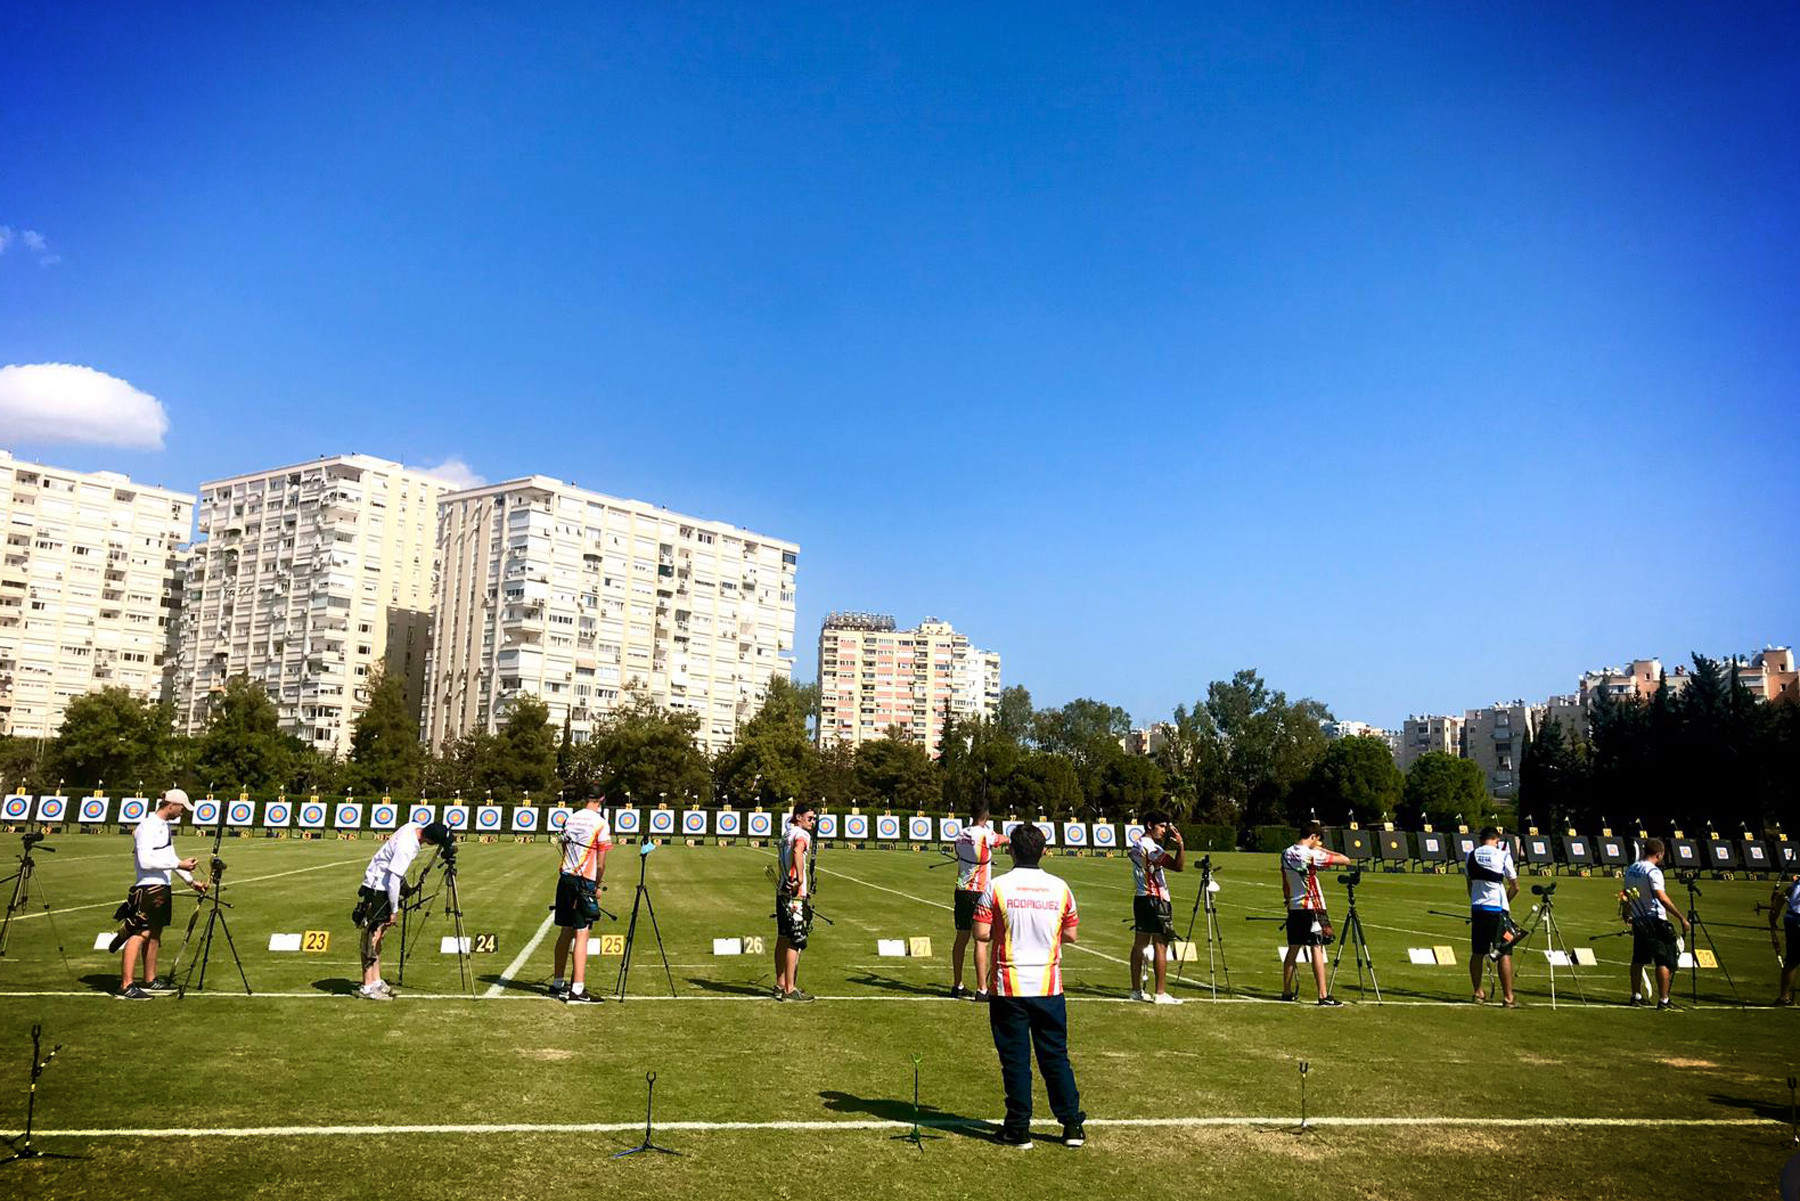 Archery's first world ranking event since start of COVID-19 pandemic begins in Antalya